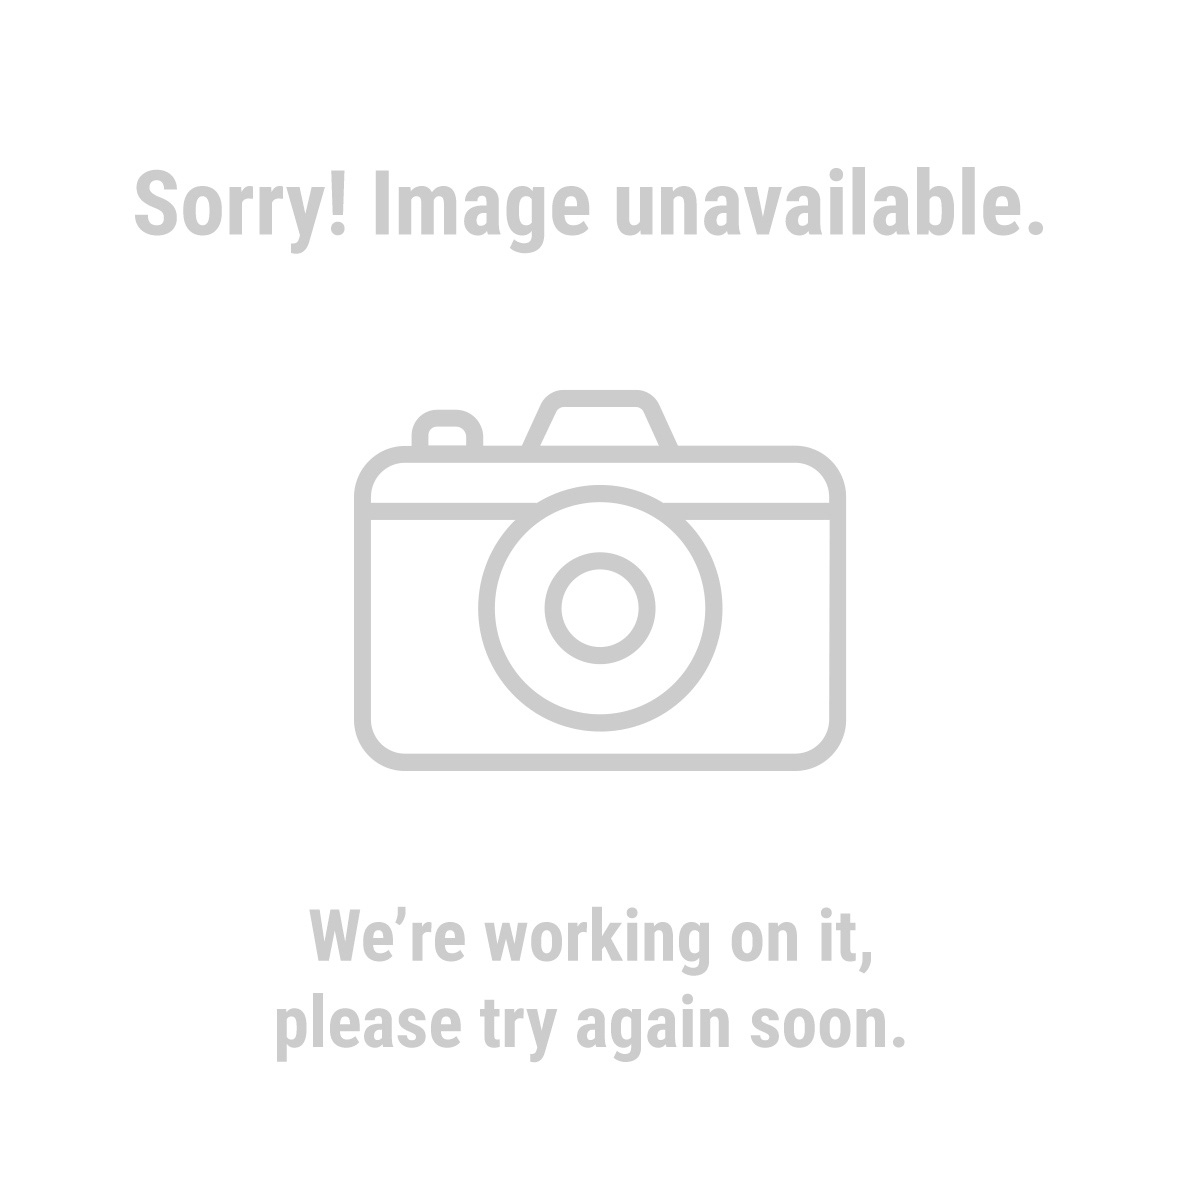 3 HP (79cc) OHV Horizontal Shaft Gas Engine EPA